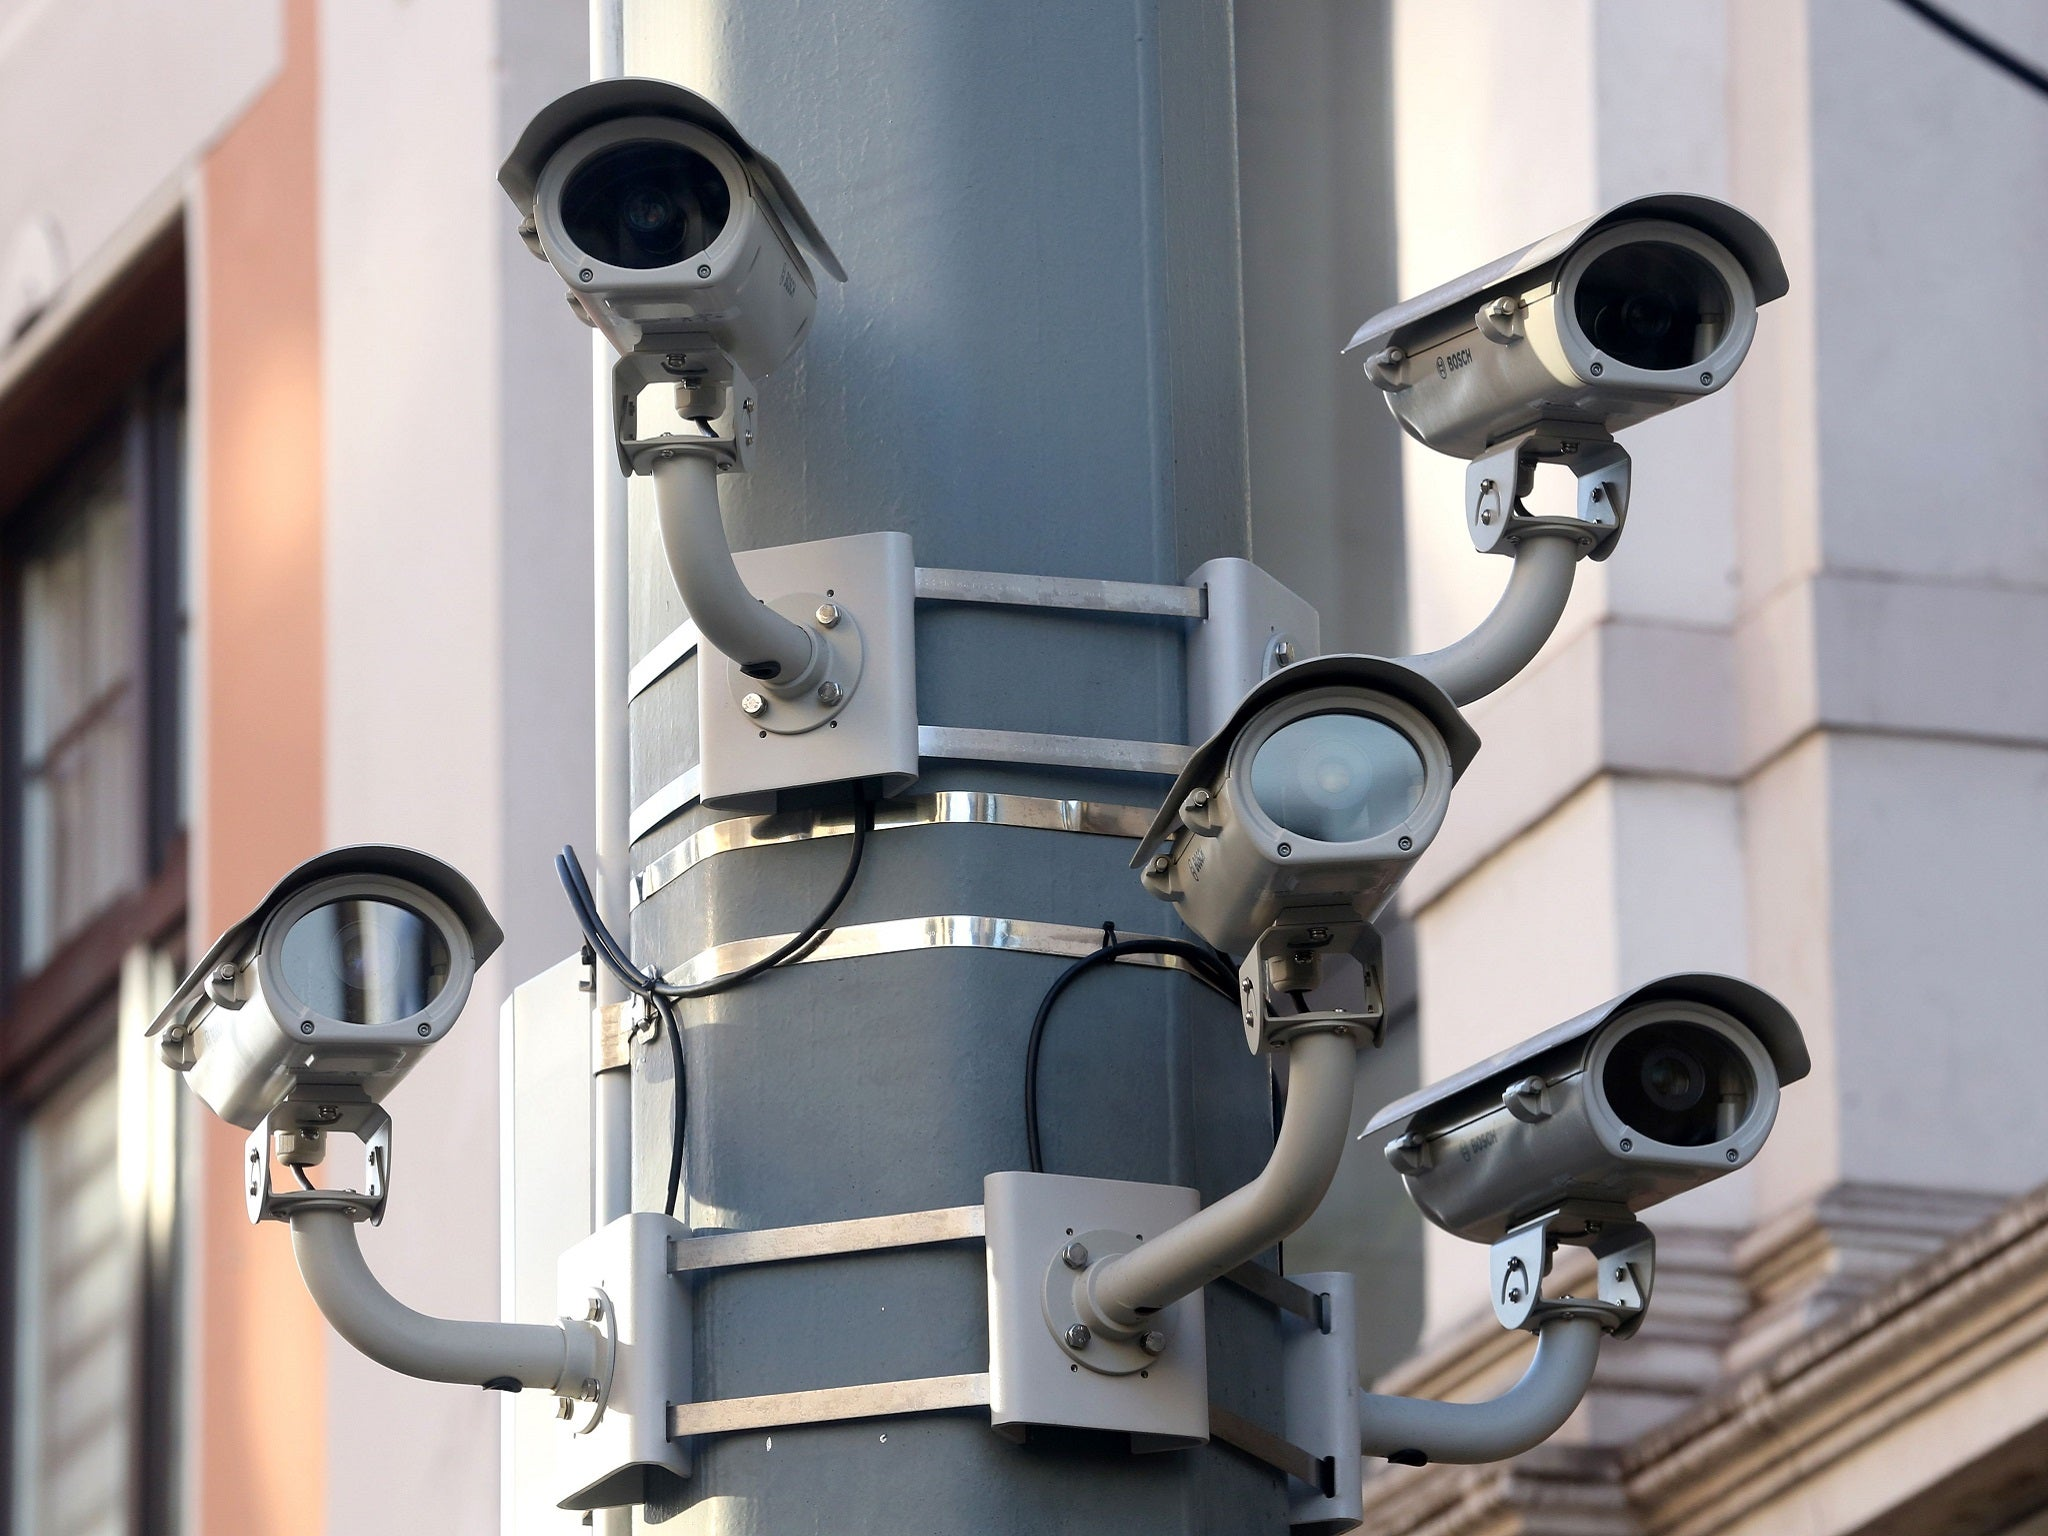 Chinese police use surveillance technology to identify